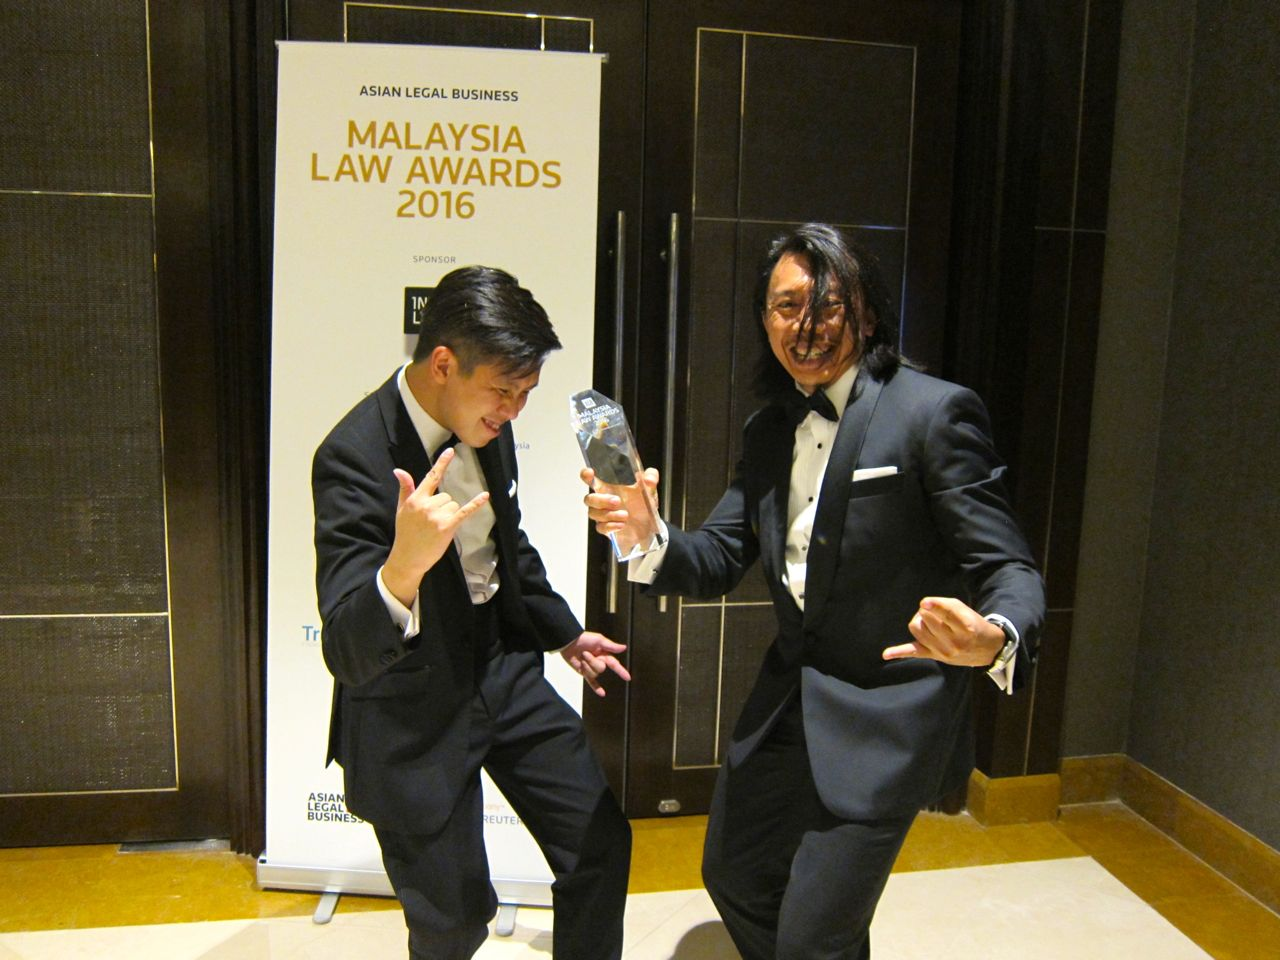 Sin Yew and Amer celebrating AmerBON's win as Litigation Law Firm of the Year